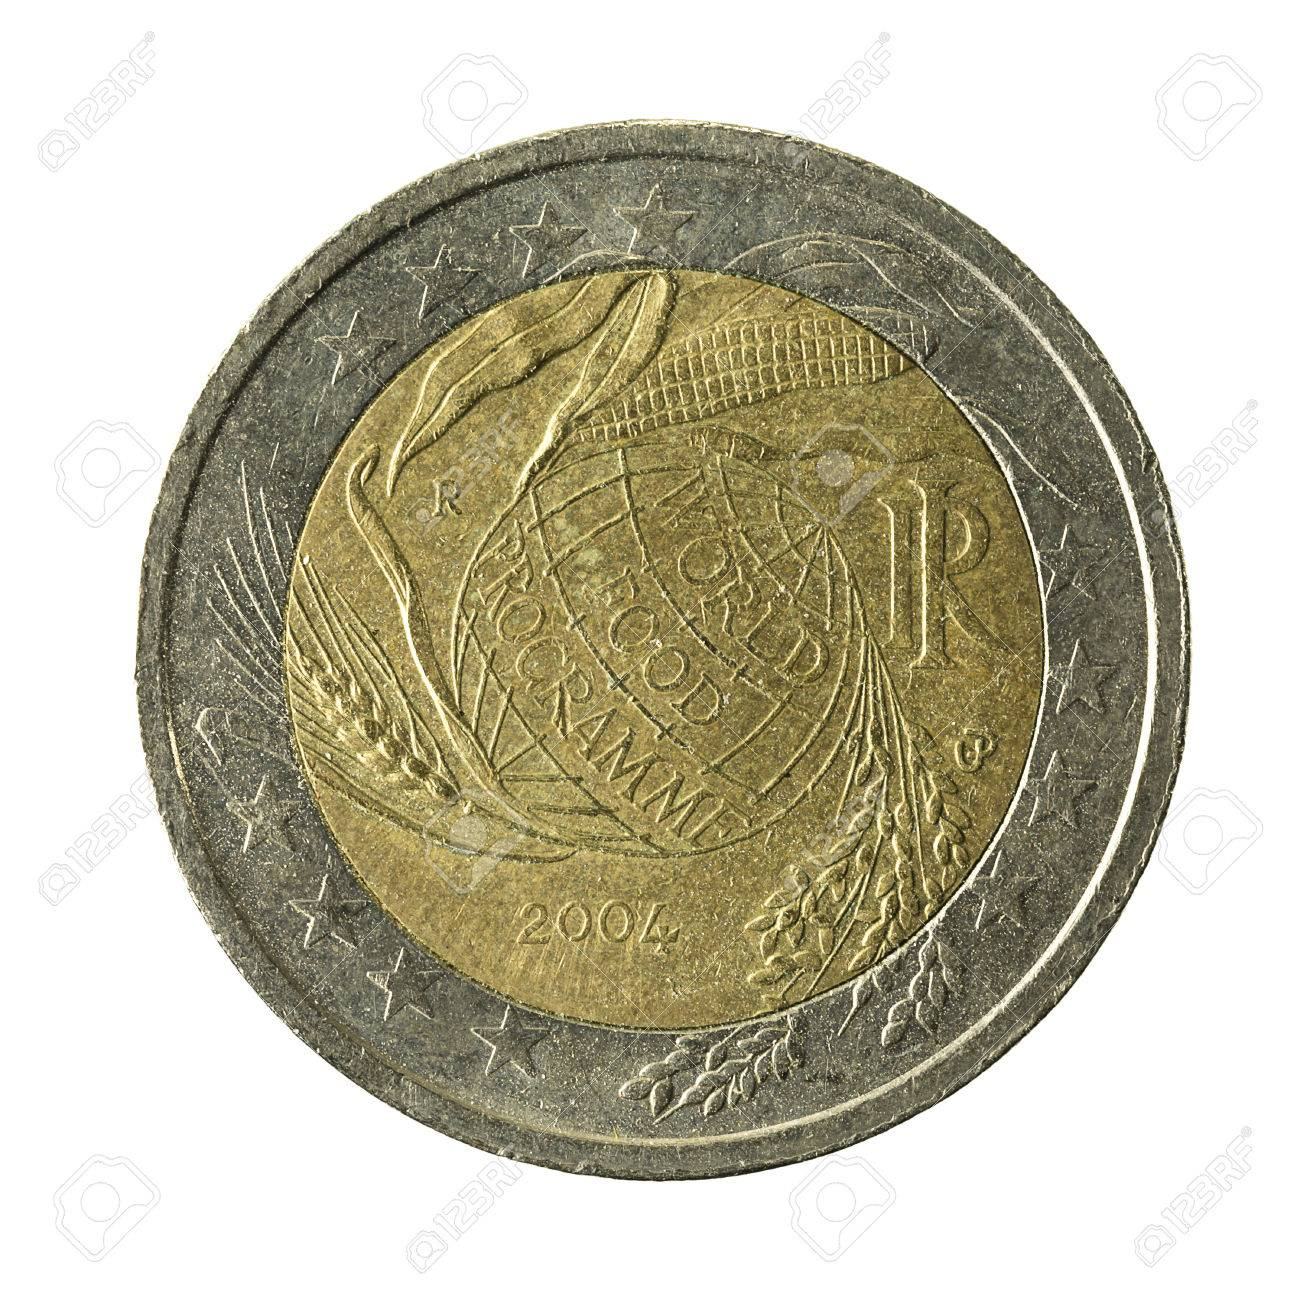 2 Euro Coin Italy World Food Programme Isolated On White Background Stock Photo Picture And Royalty Free Image Image 72550802